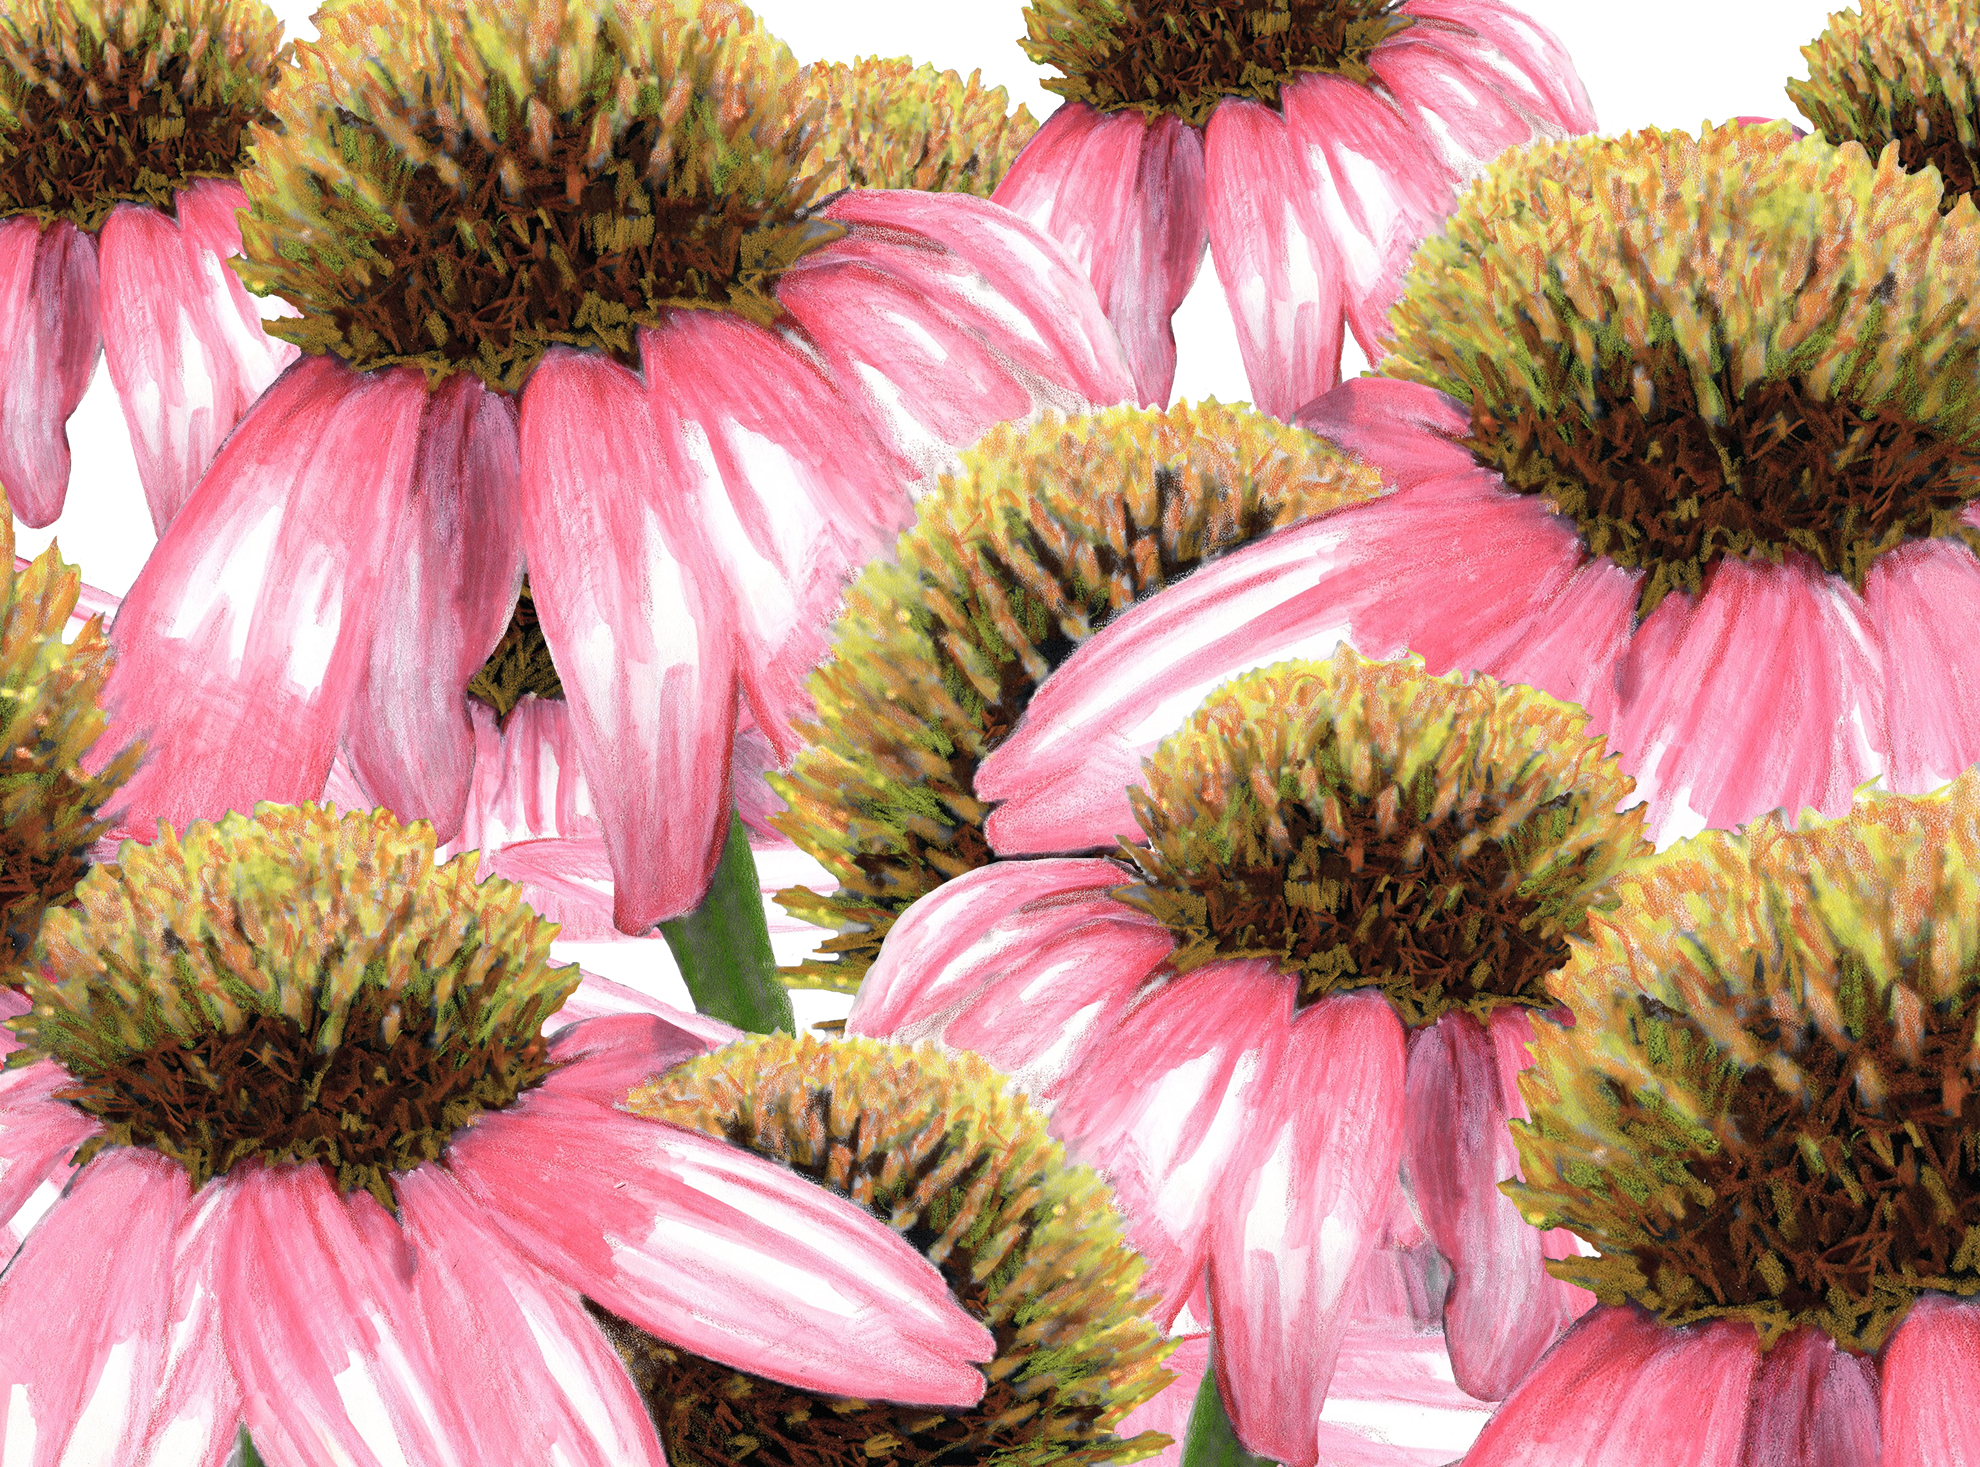 Coneflowers - Watercolor and color pencil